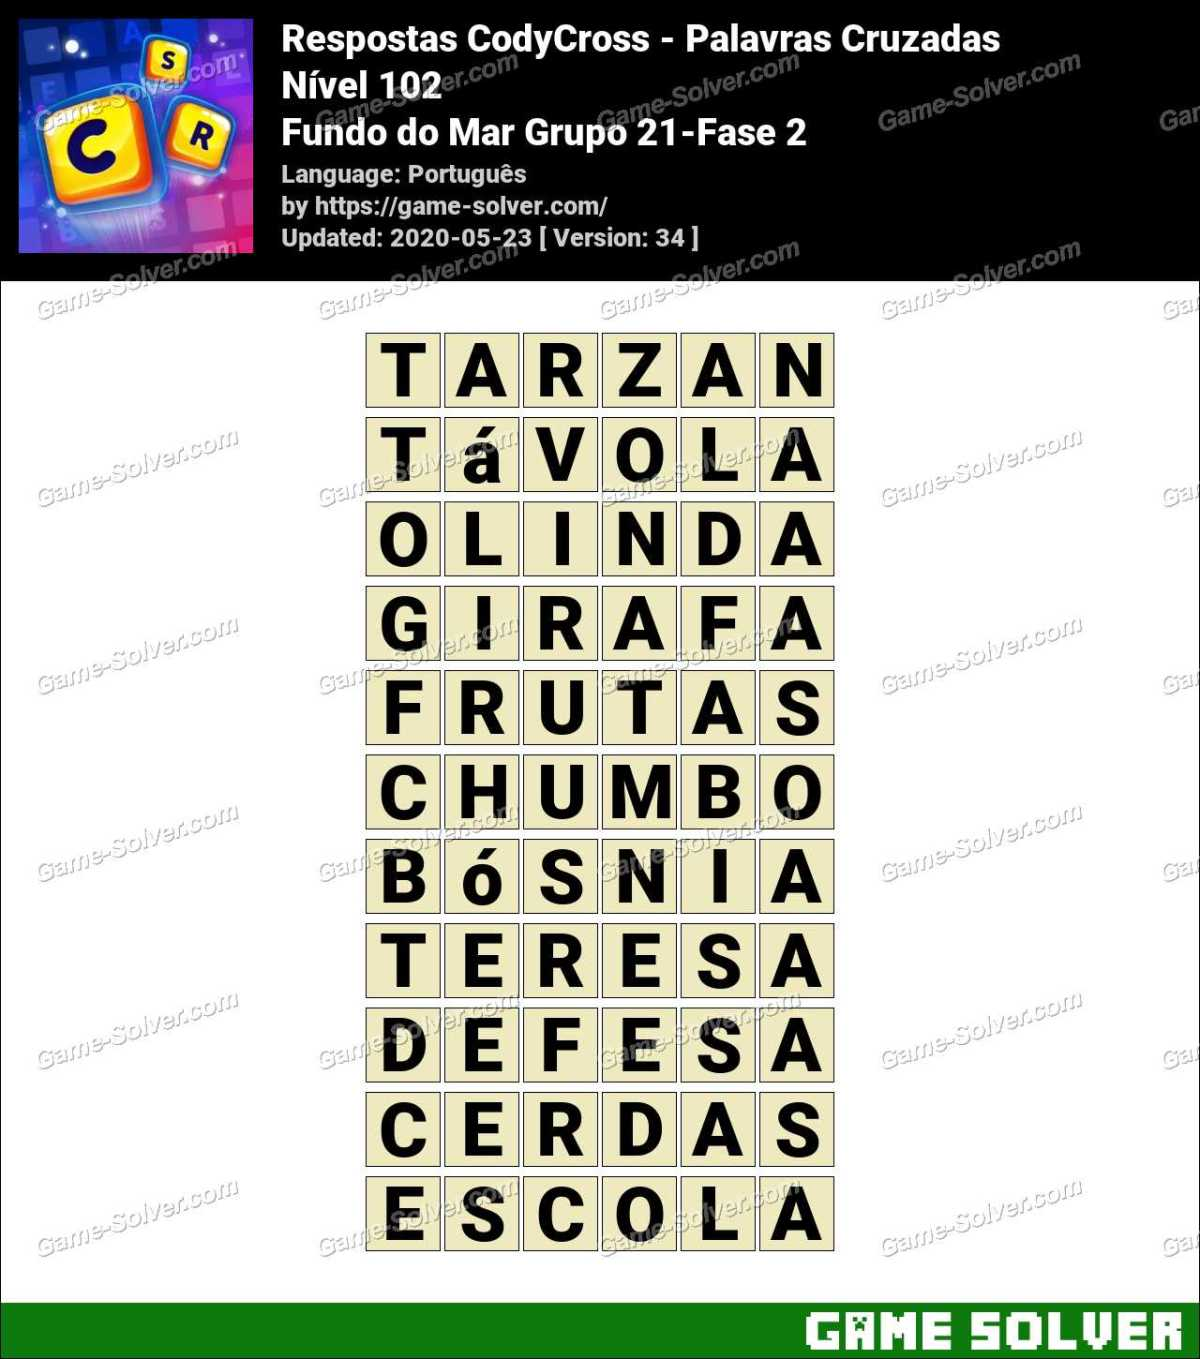 Respostas CodyCross Fundo do Mar Grupo 21-Fase 2